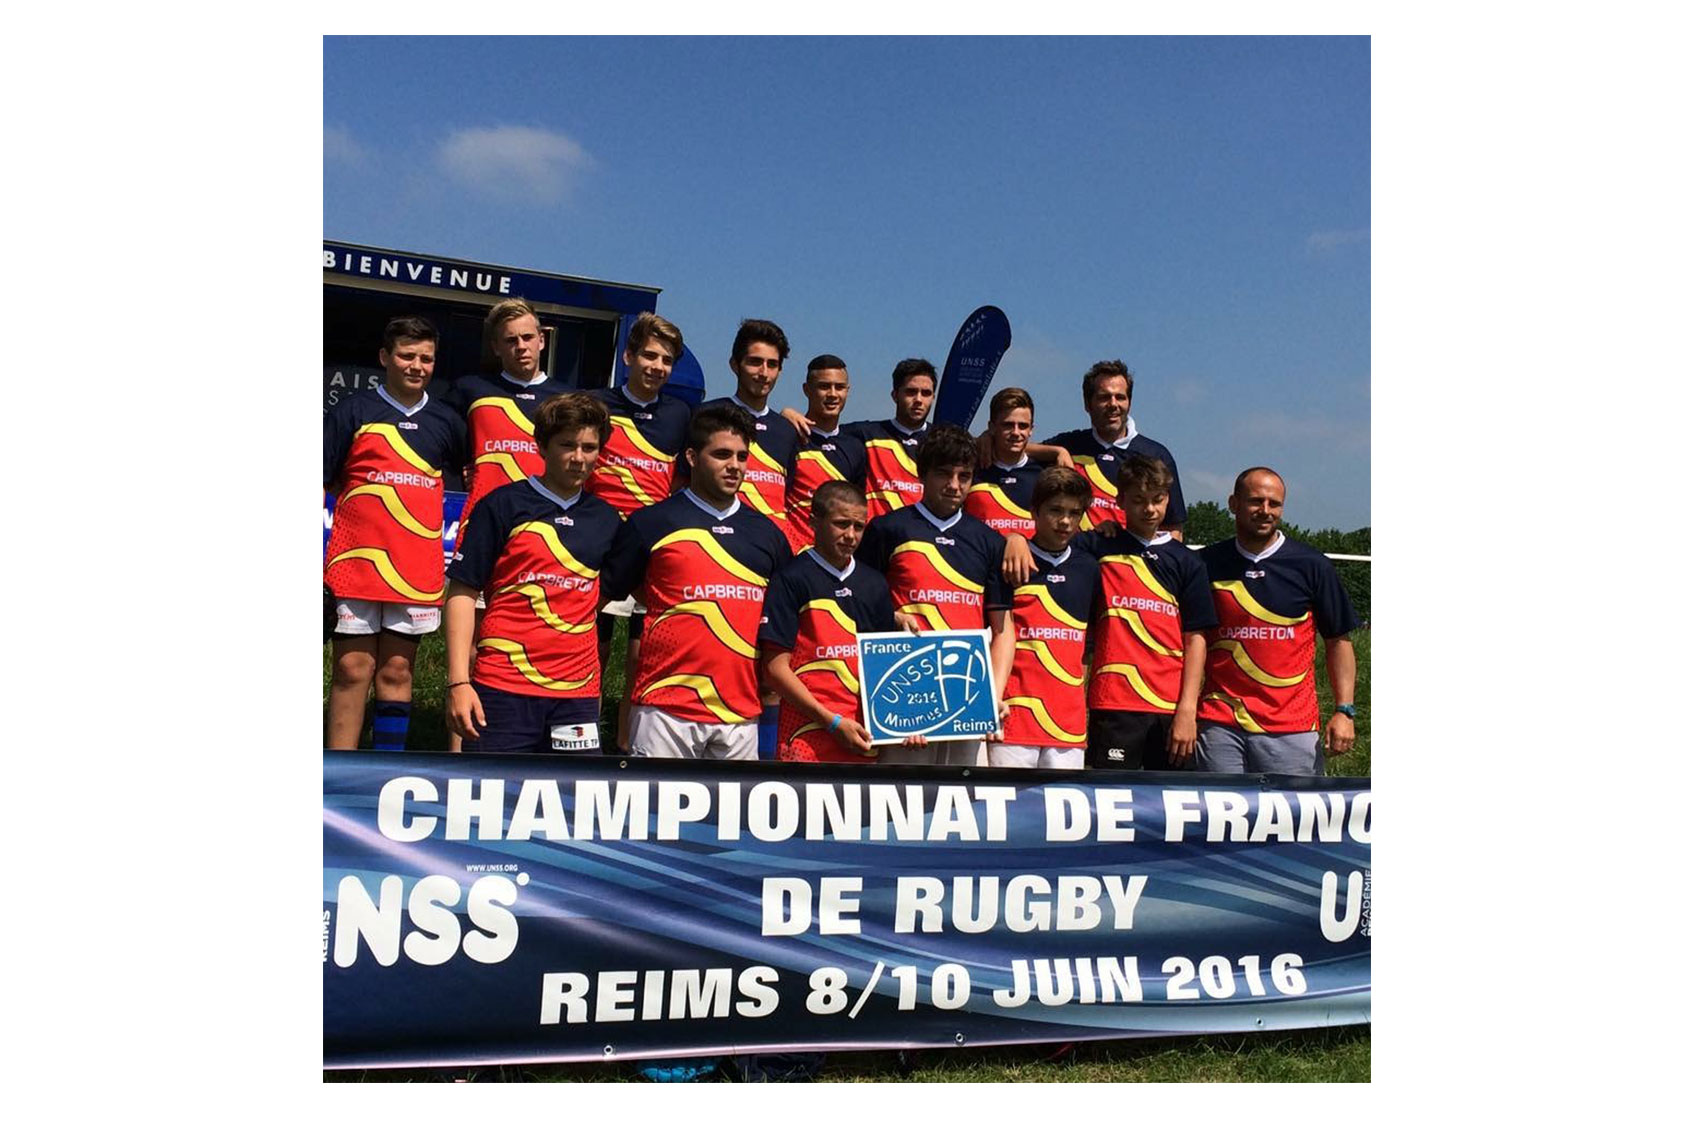 Jean Rostand Capbreton Champion de France UNSS Rugby